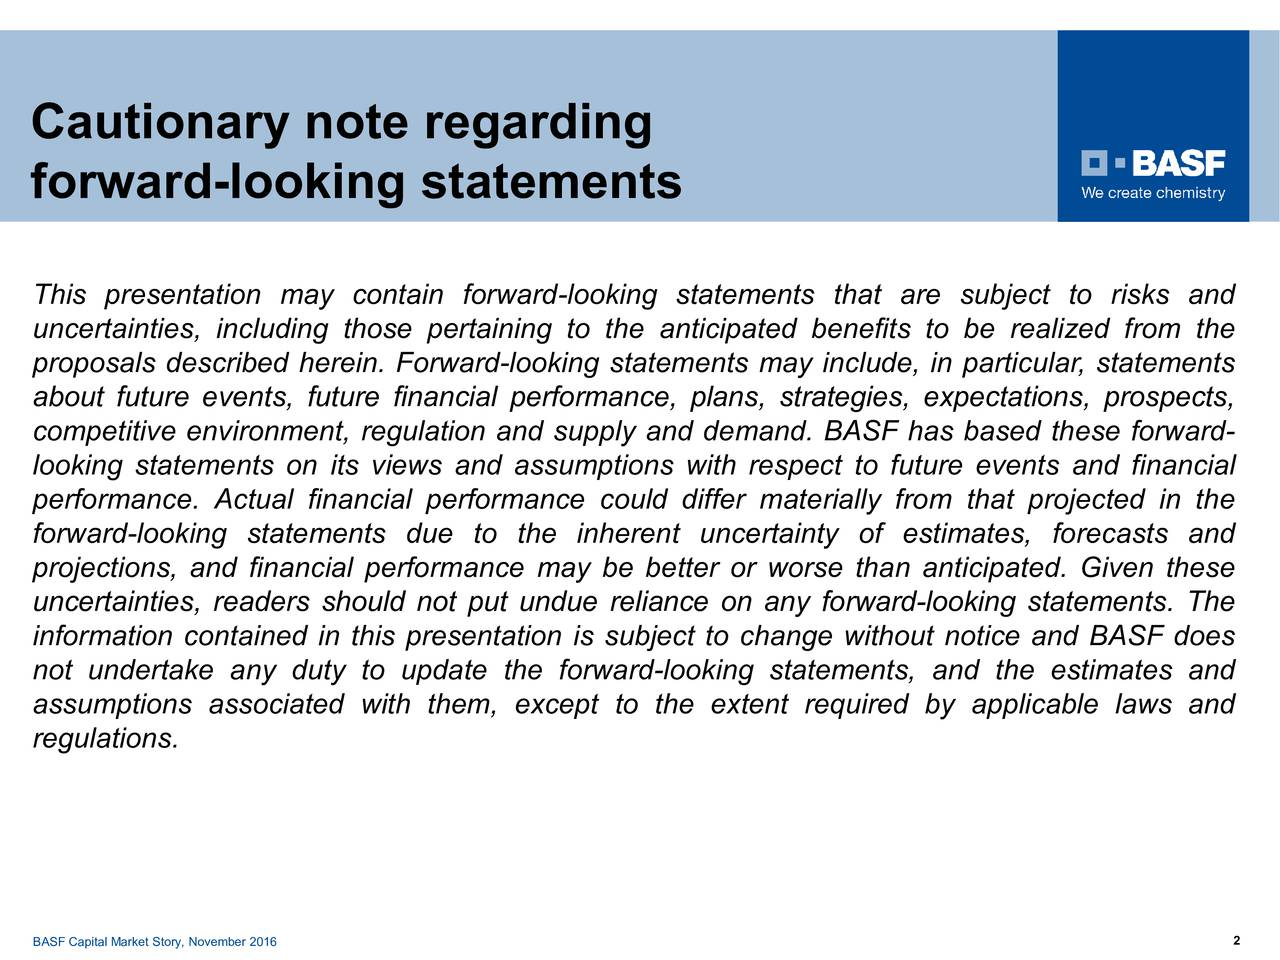 Cautionary note regarding forward-looking statements This presentation may contain forward-looking statements that are subject to risks and uncertainties, including those pertaining to the anticipated benefits to be realized from the proposals described herein. Forward-looking statements may include, in particular, statements about future events, future financial performance, plans, strategies, expectations, prospects, competitive environment, regulation and supply and demand. BASF has based these forward- looking statements on its views and assumptions with respect to future events and financial performance. Actual financial performance could differ materially from that projected in the forward-looking statements due to the inherent uncertainty of estimates, forecasts and projections, and financial performance may be better or worse than anticipated. Given these uncertainties, readers should not put undue reliance on any forward-looking statements. The information contained in this presentation is subject to change without notice and BASF does not undertake any duty to update the forward-looking statements, and the estimates and assumptions associated with them, except to the extent required by applicable laws and regulations. BASF Capital Market Story, November 2016 2